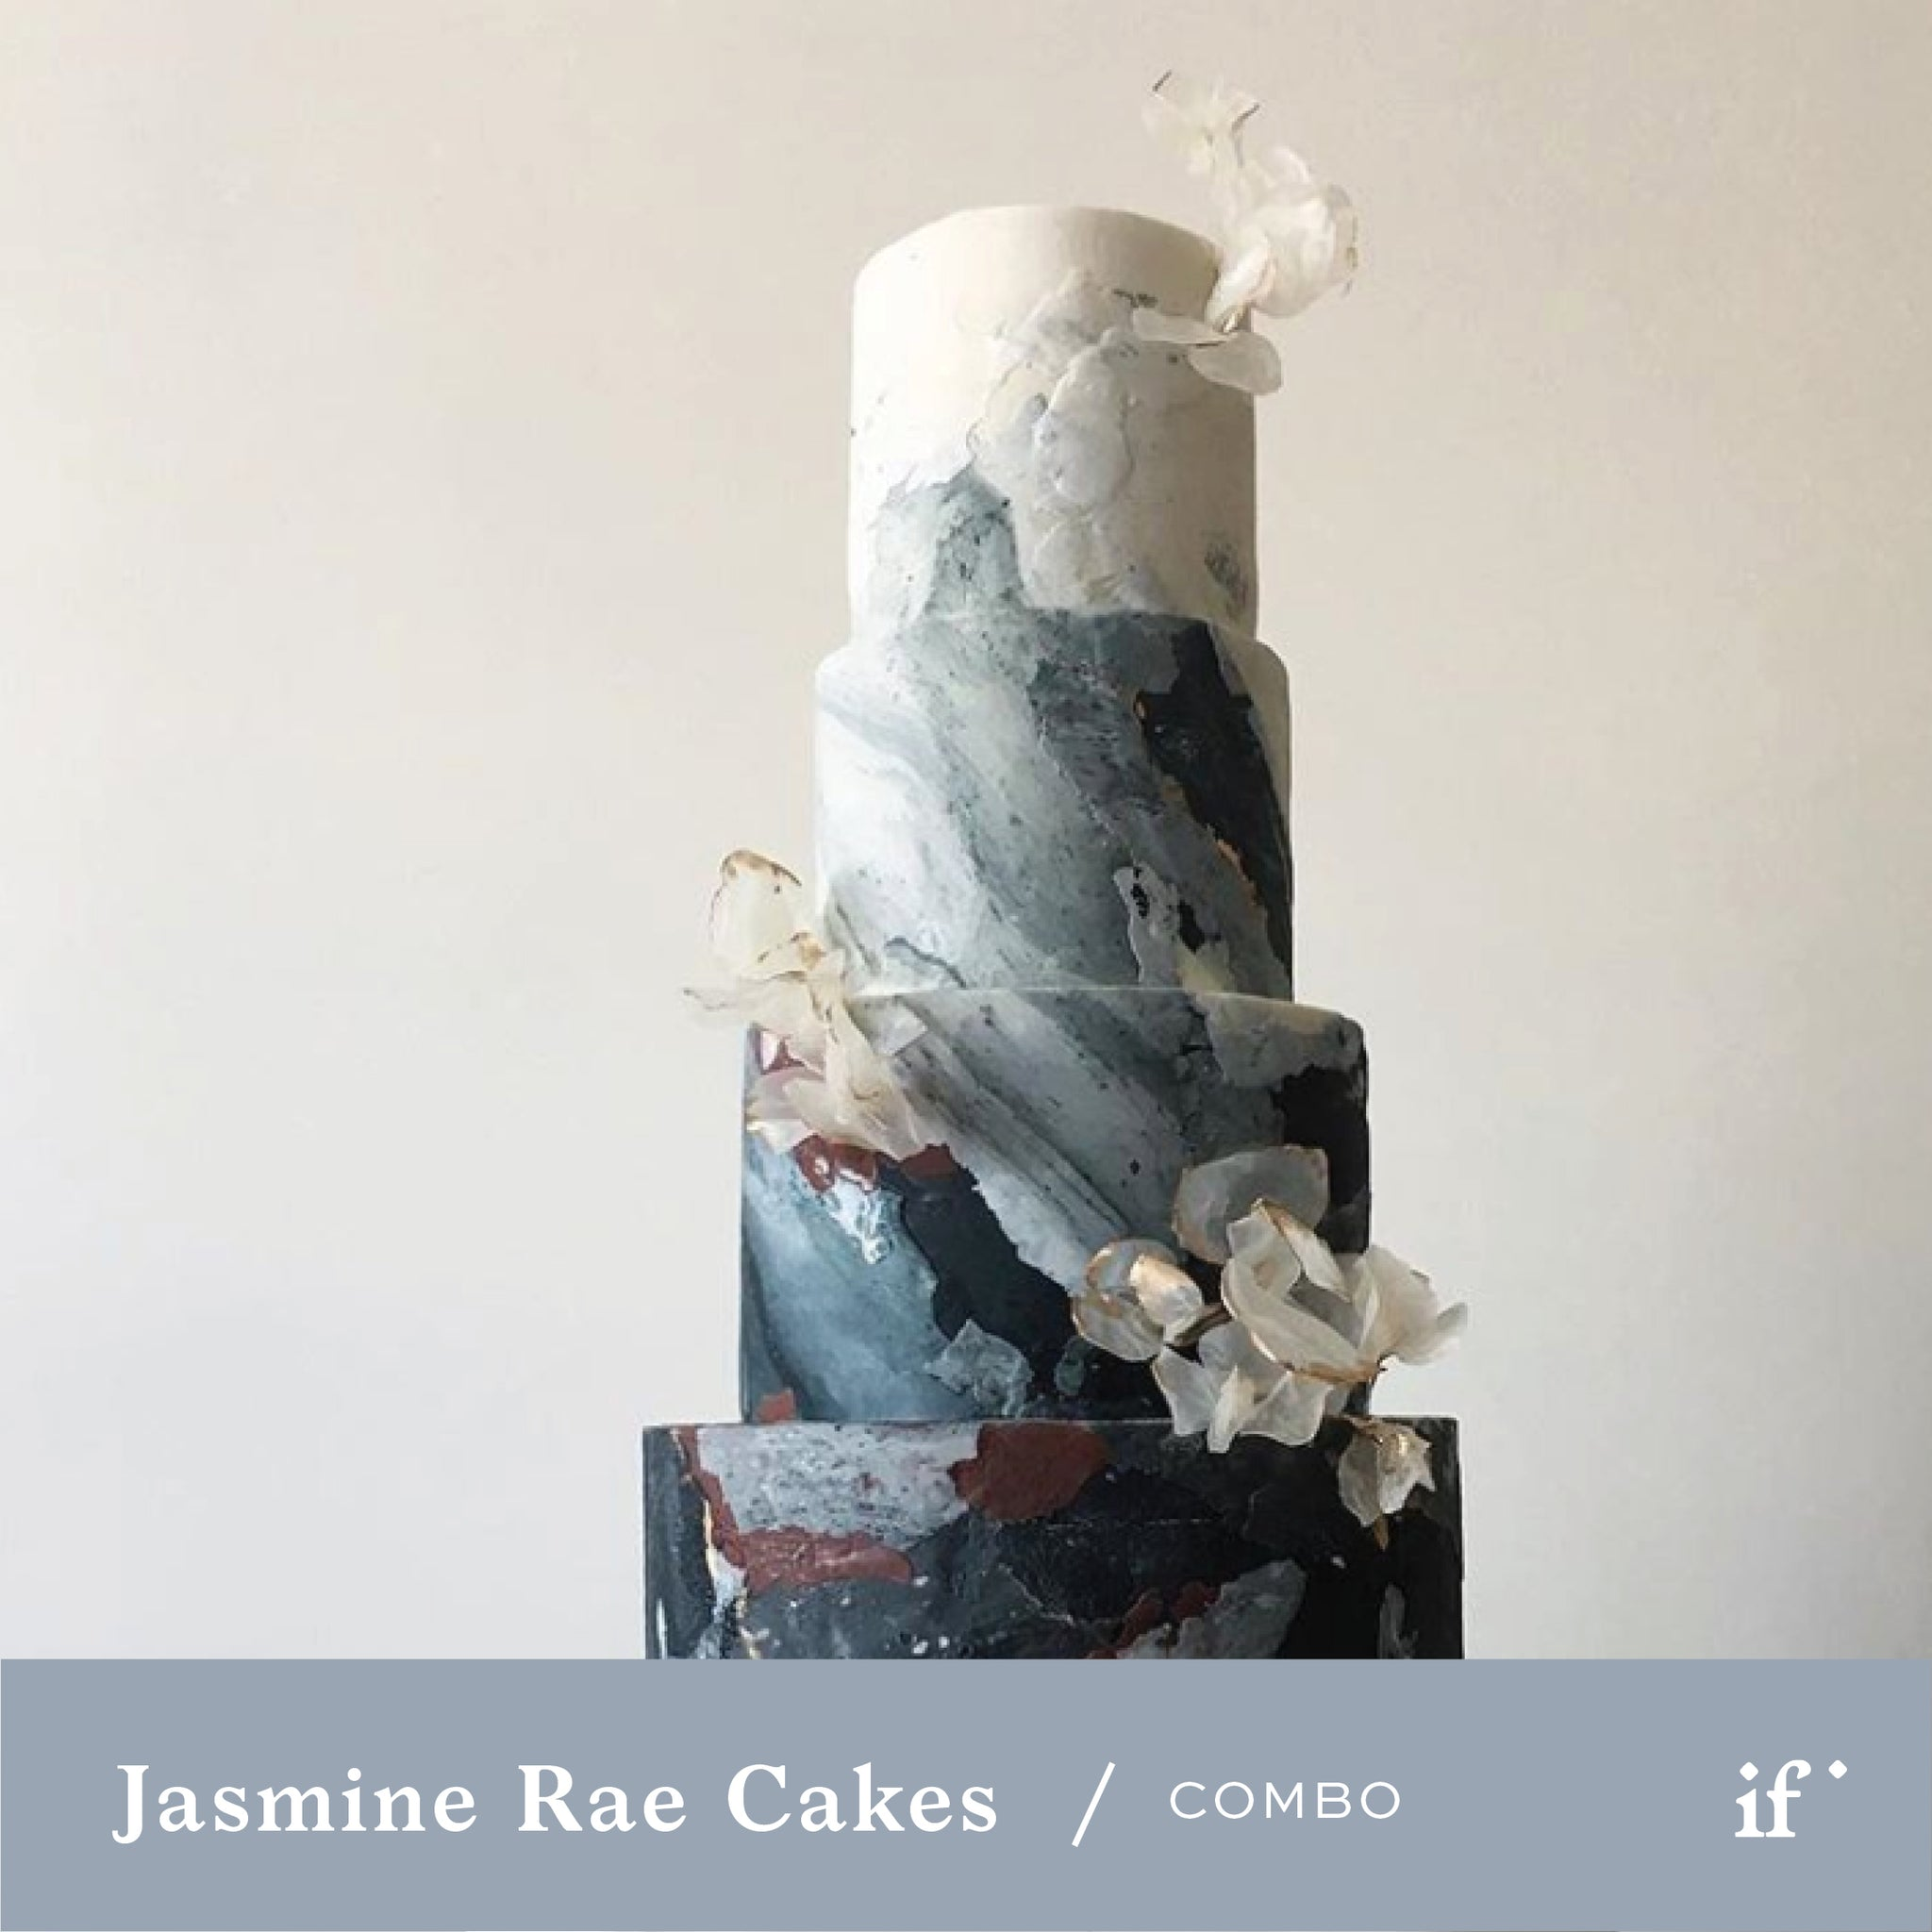 Jasmine Rae Cakes: The Art of Cake Decorating with Texture